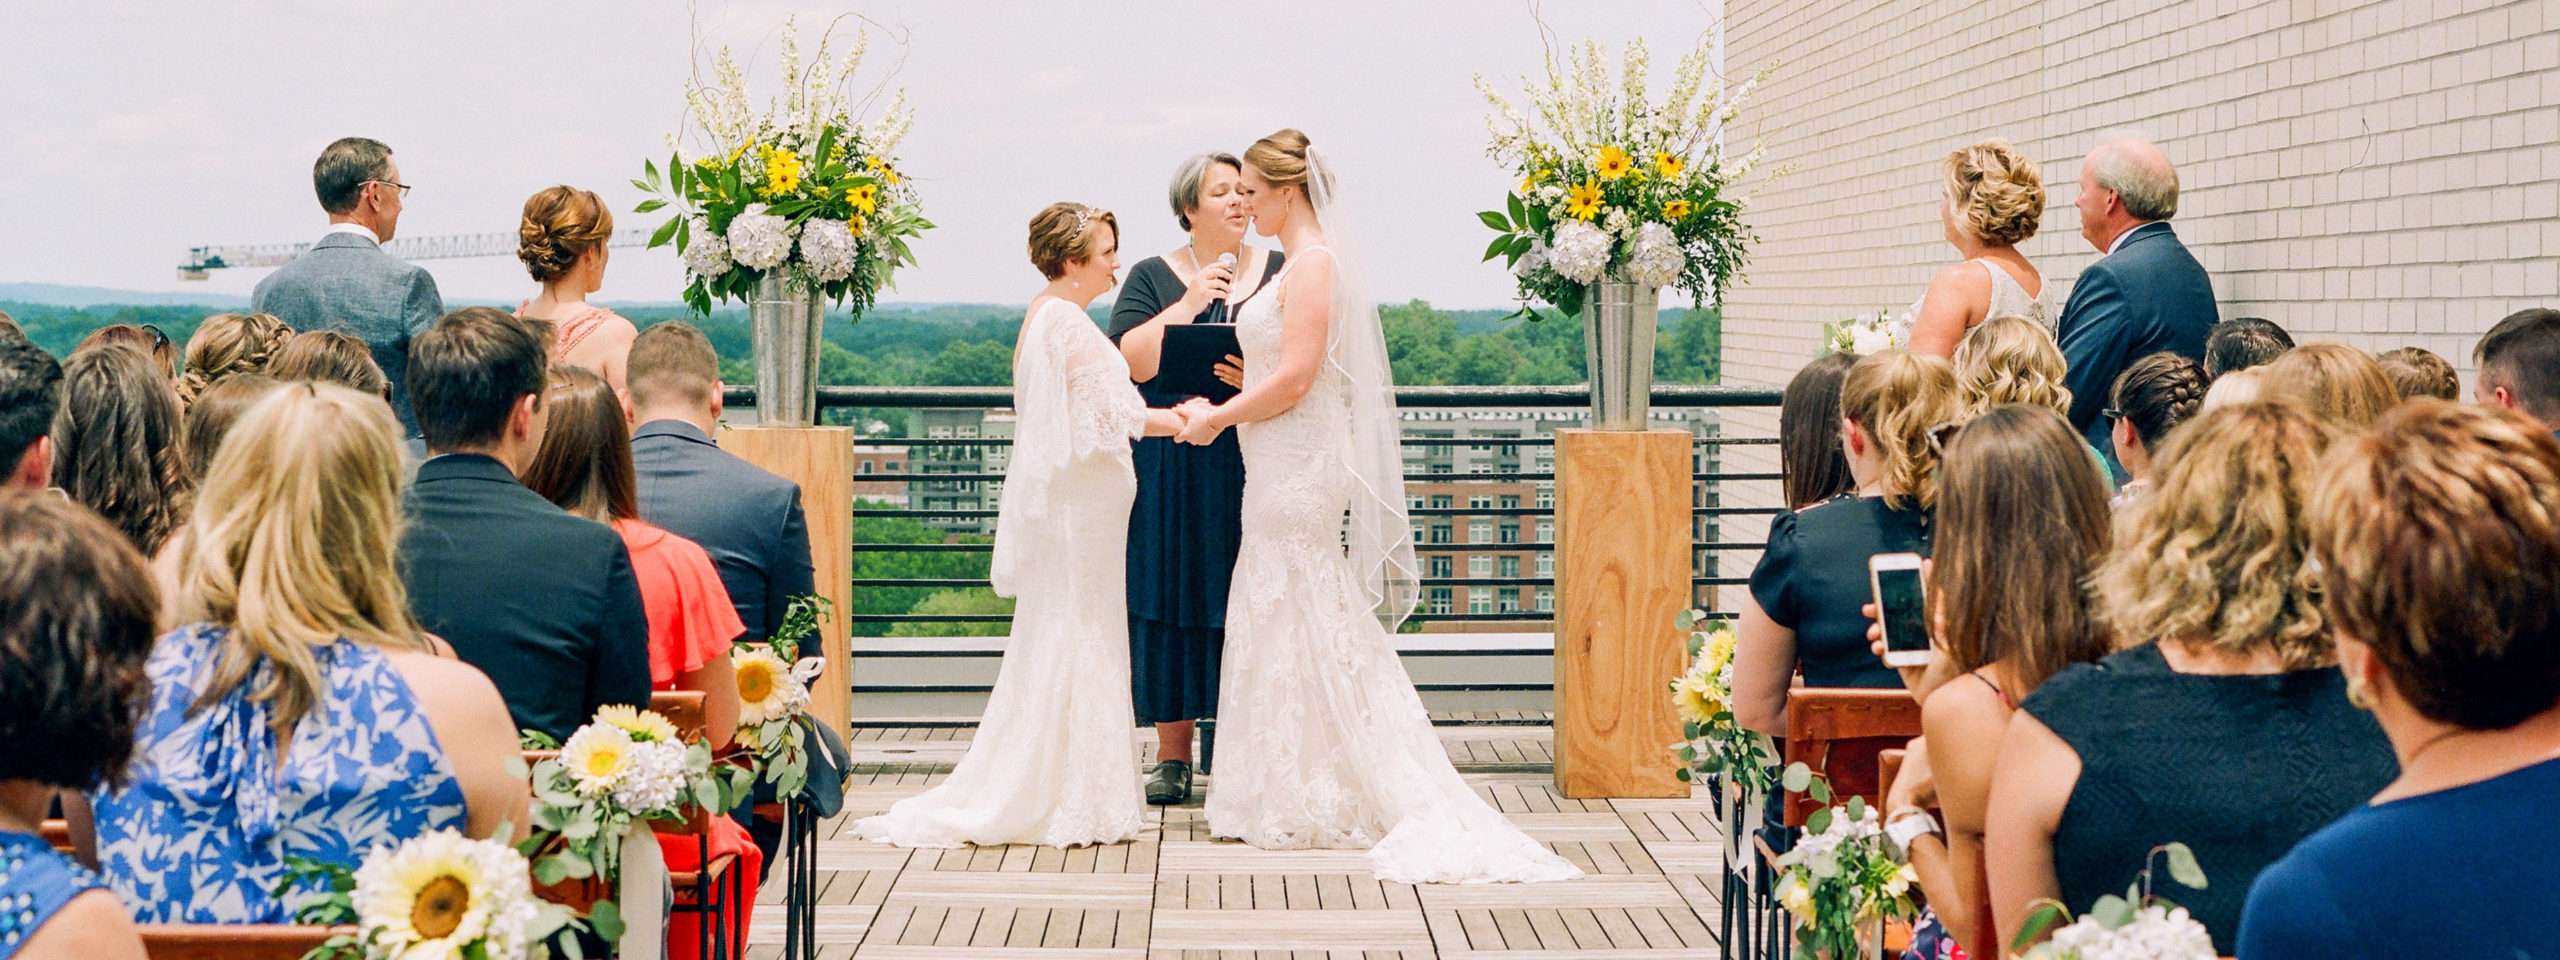 Two brides on the rooftop at The Durham Hotel exchanging wedding vows with friends & family